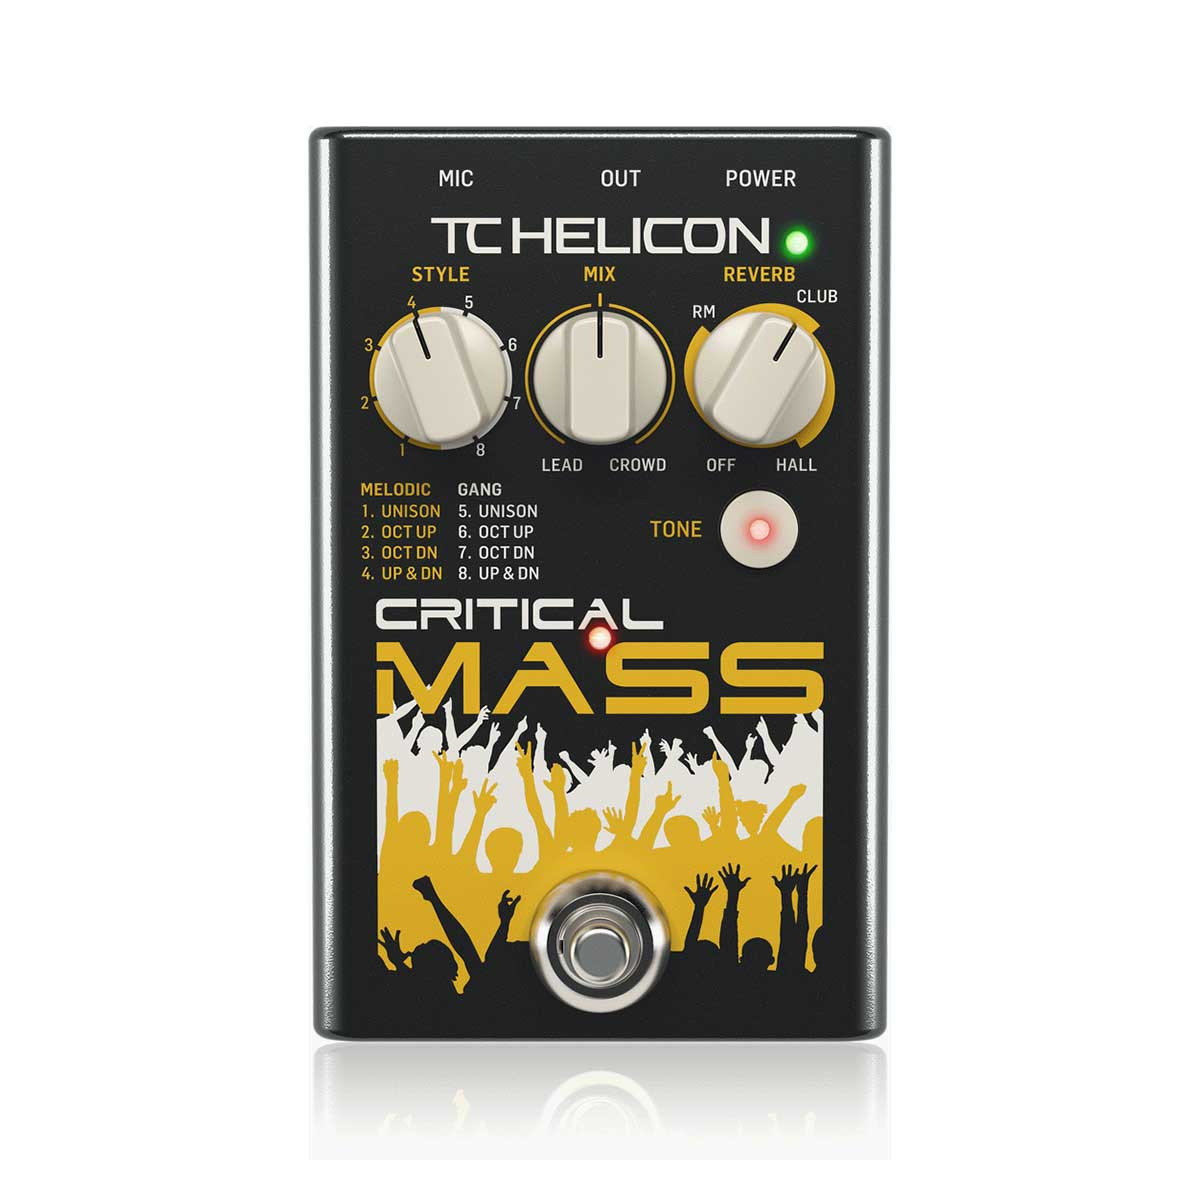 TC Helicon Critical Mass Studio-Quality Vocal Stompbox for Large Group-Sound Effects